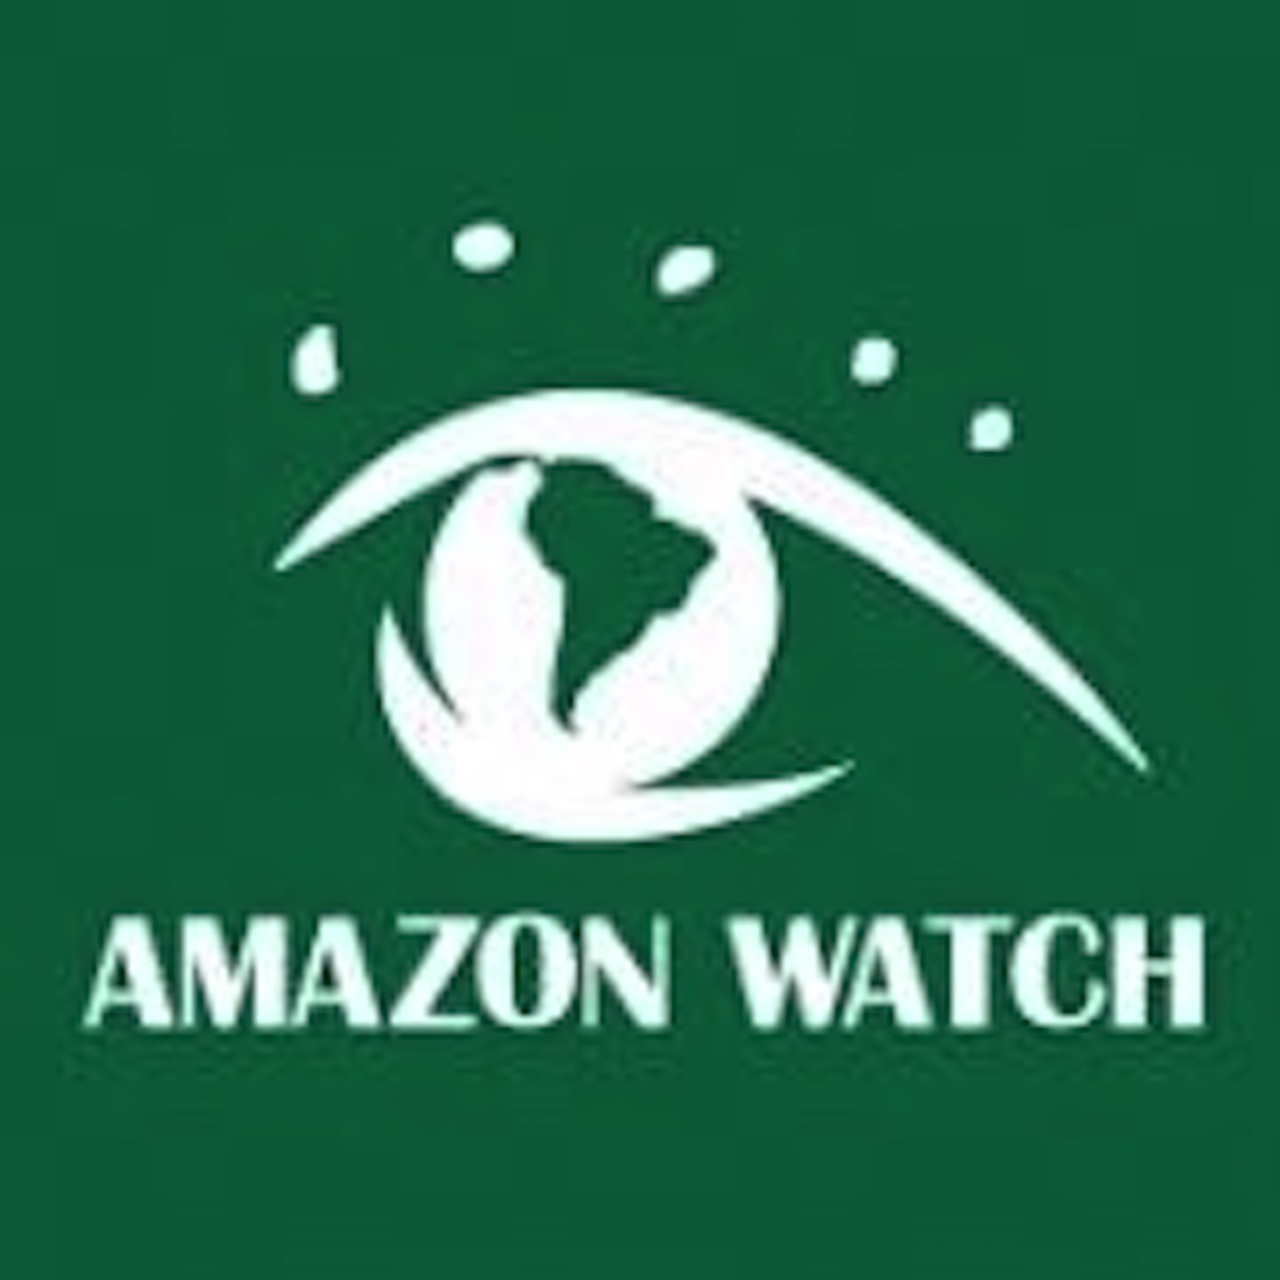 Voices Radio: Tuen in to hear the latest about Amazon, in this weeks episode; Amazon Watch.